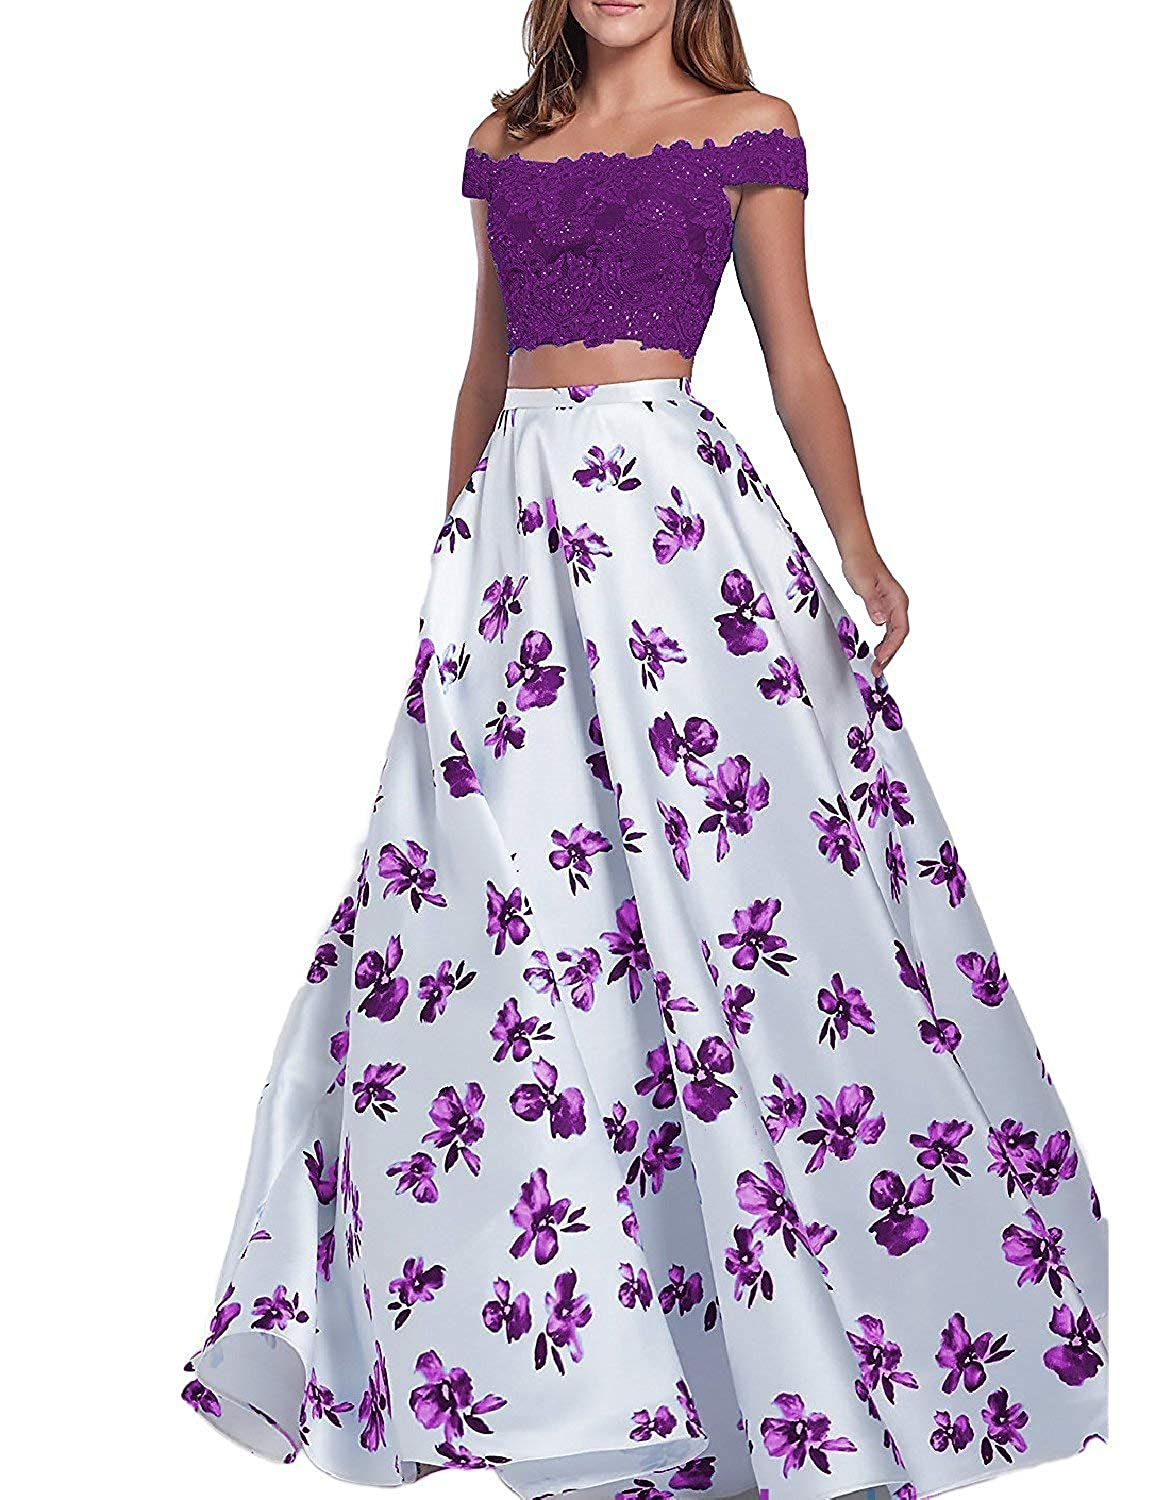 Purple Scarisee 2 Pieces Off Shoulder Beaded Floral Print Prom Evening Party Dress Lace